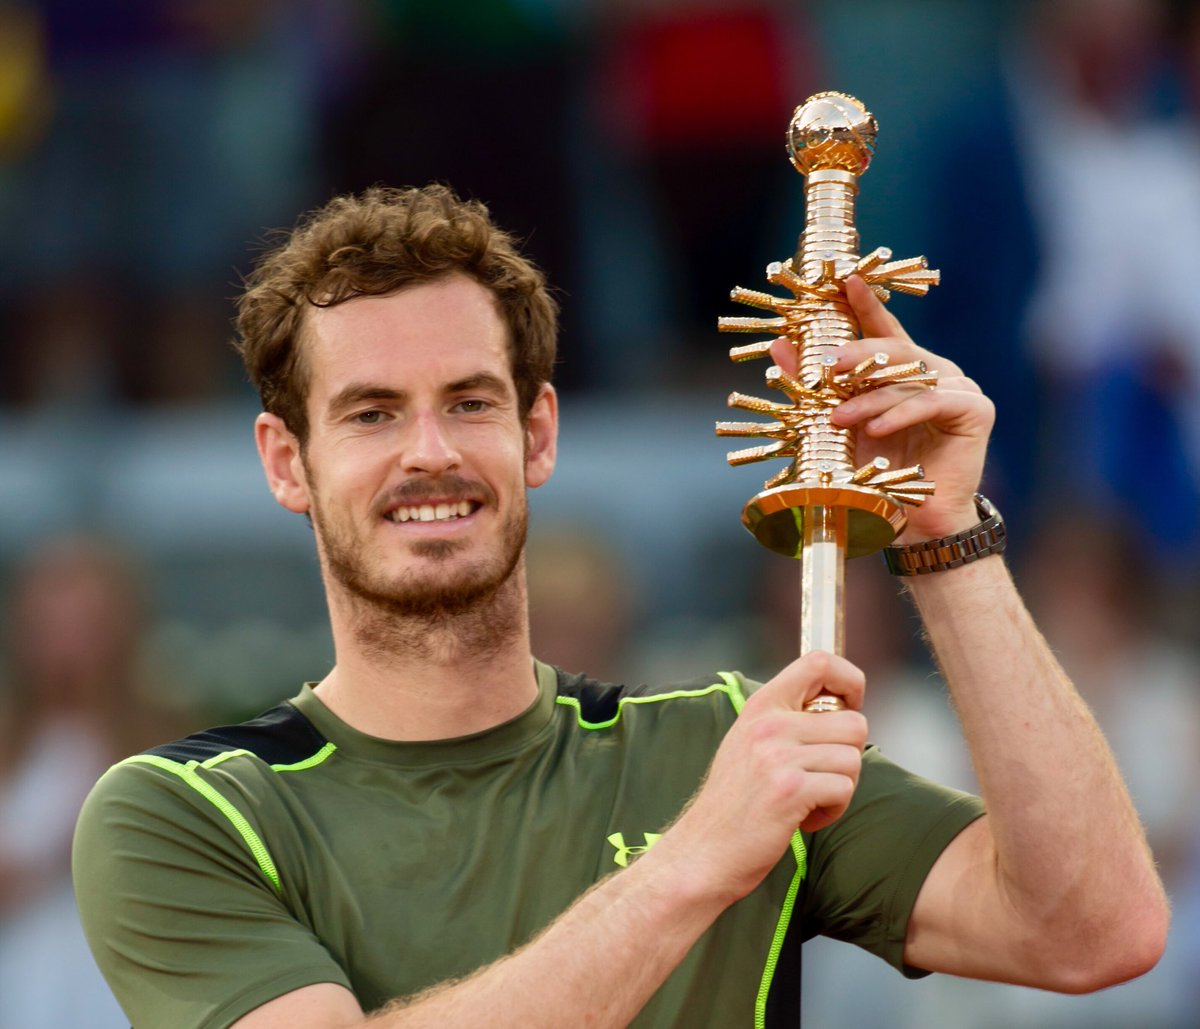 Andy murray twitter - 3 Replies 19 Retweets 112 Likes